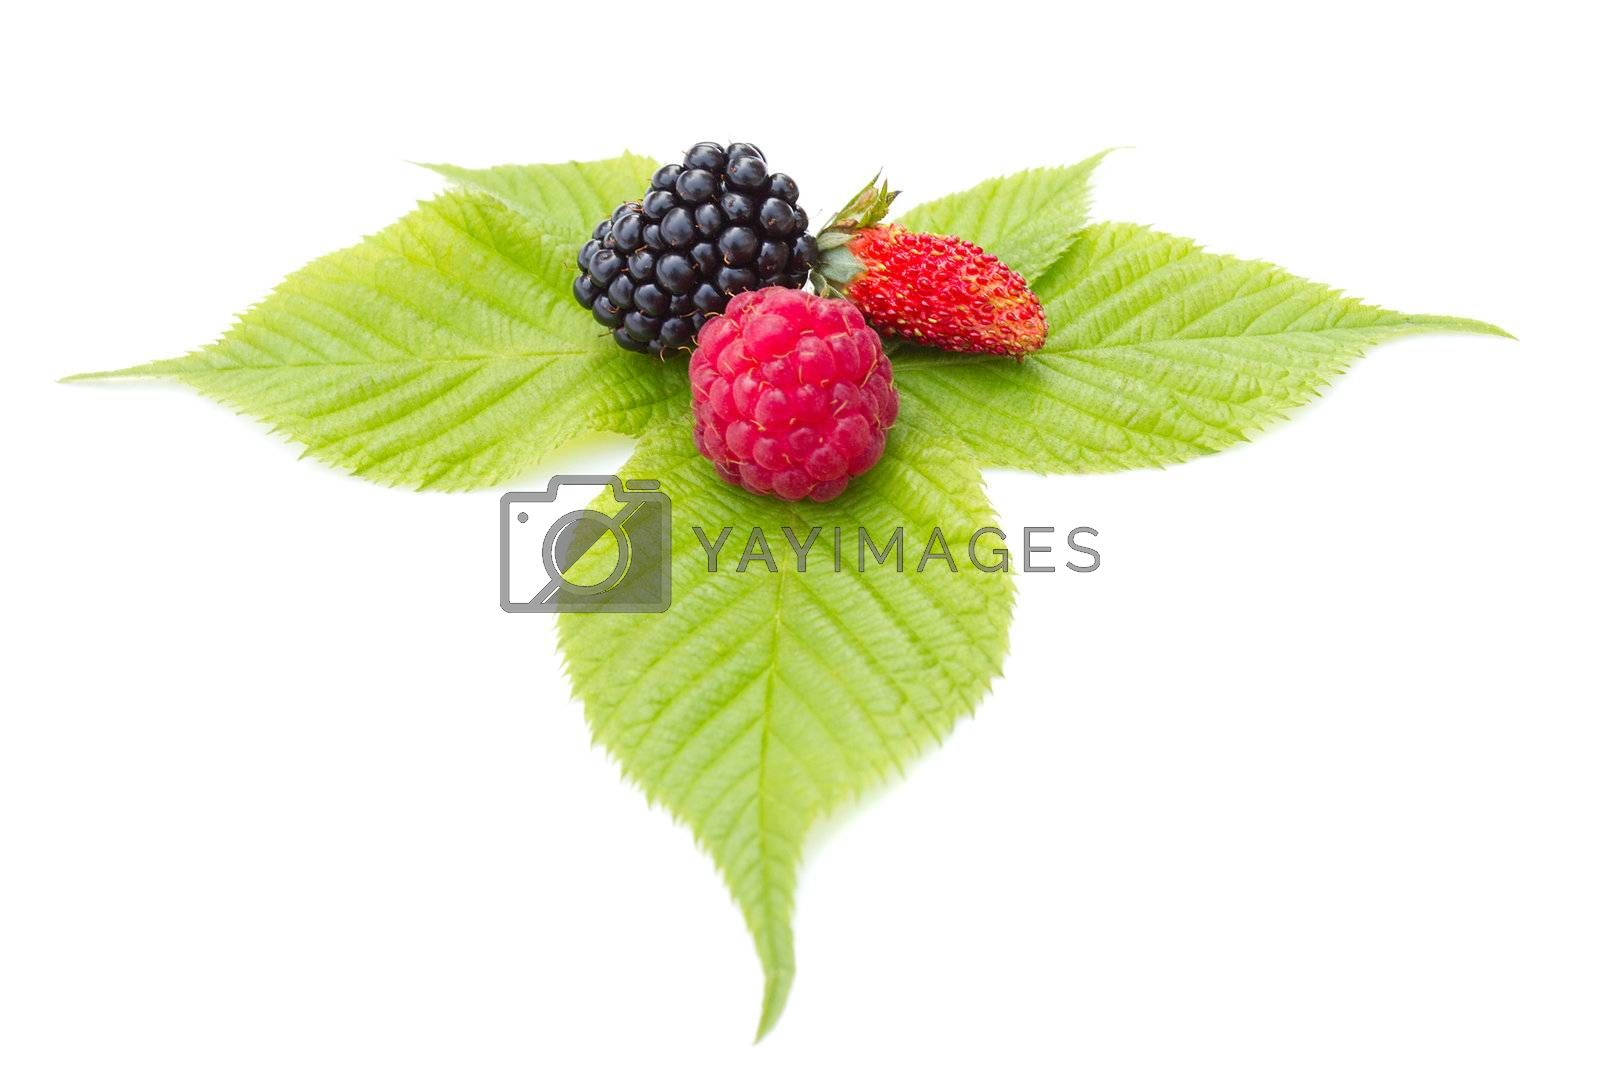 strawberry, blackberry and raspberry on leaf, isolated on white